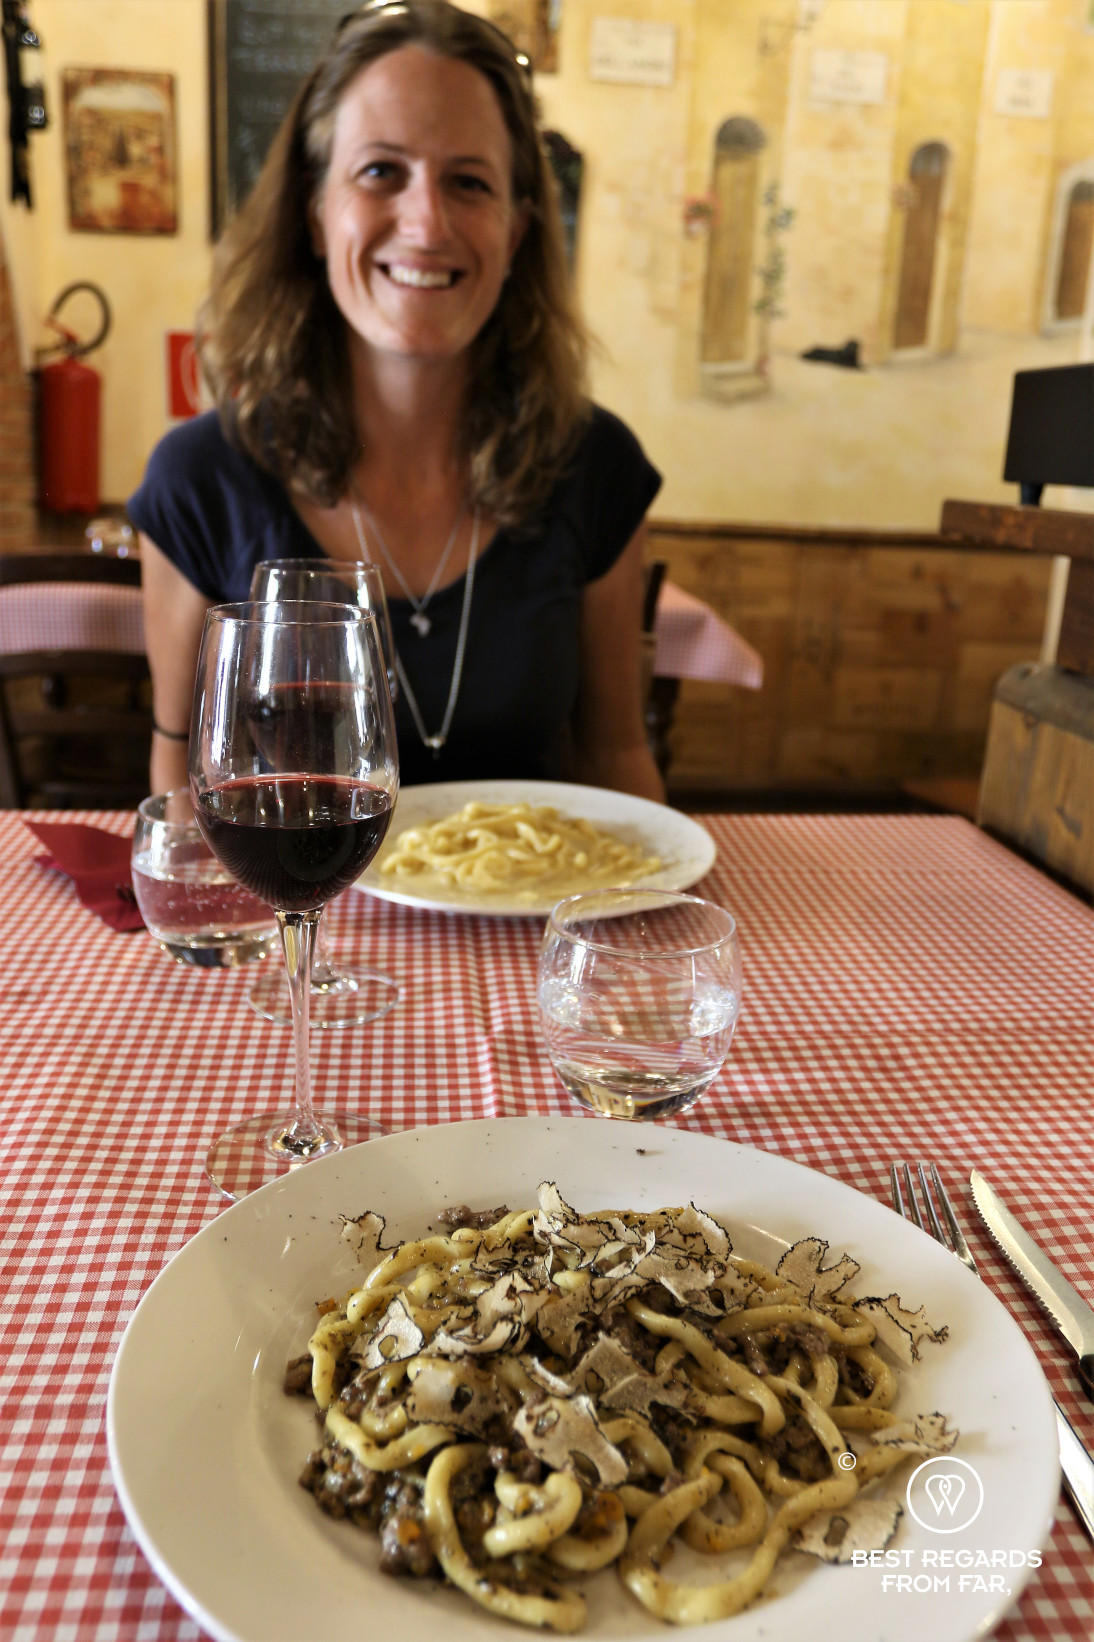 Woman smiling in an Italian restaurant with a table set with local speacialties